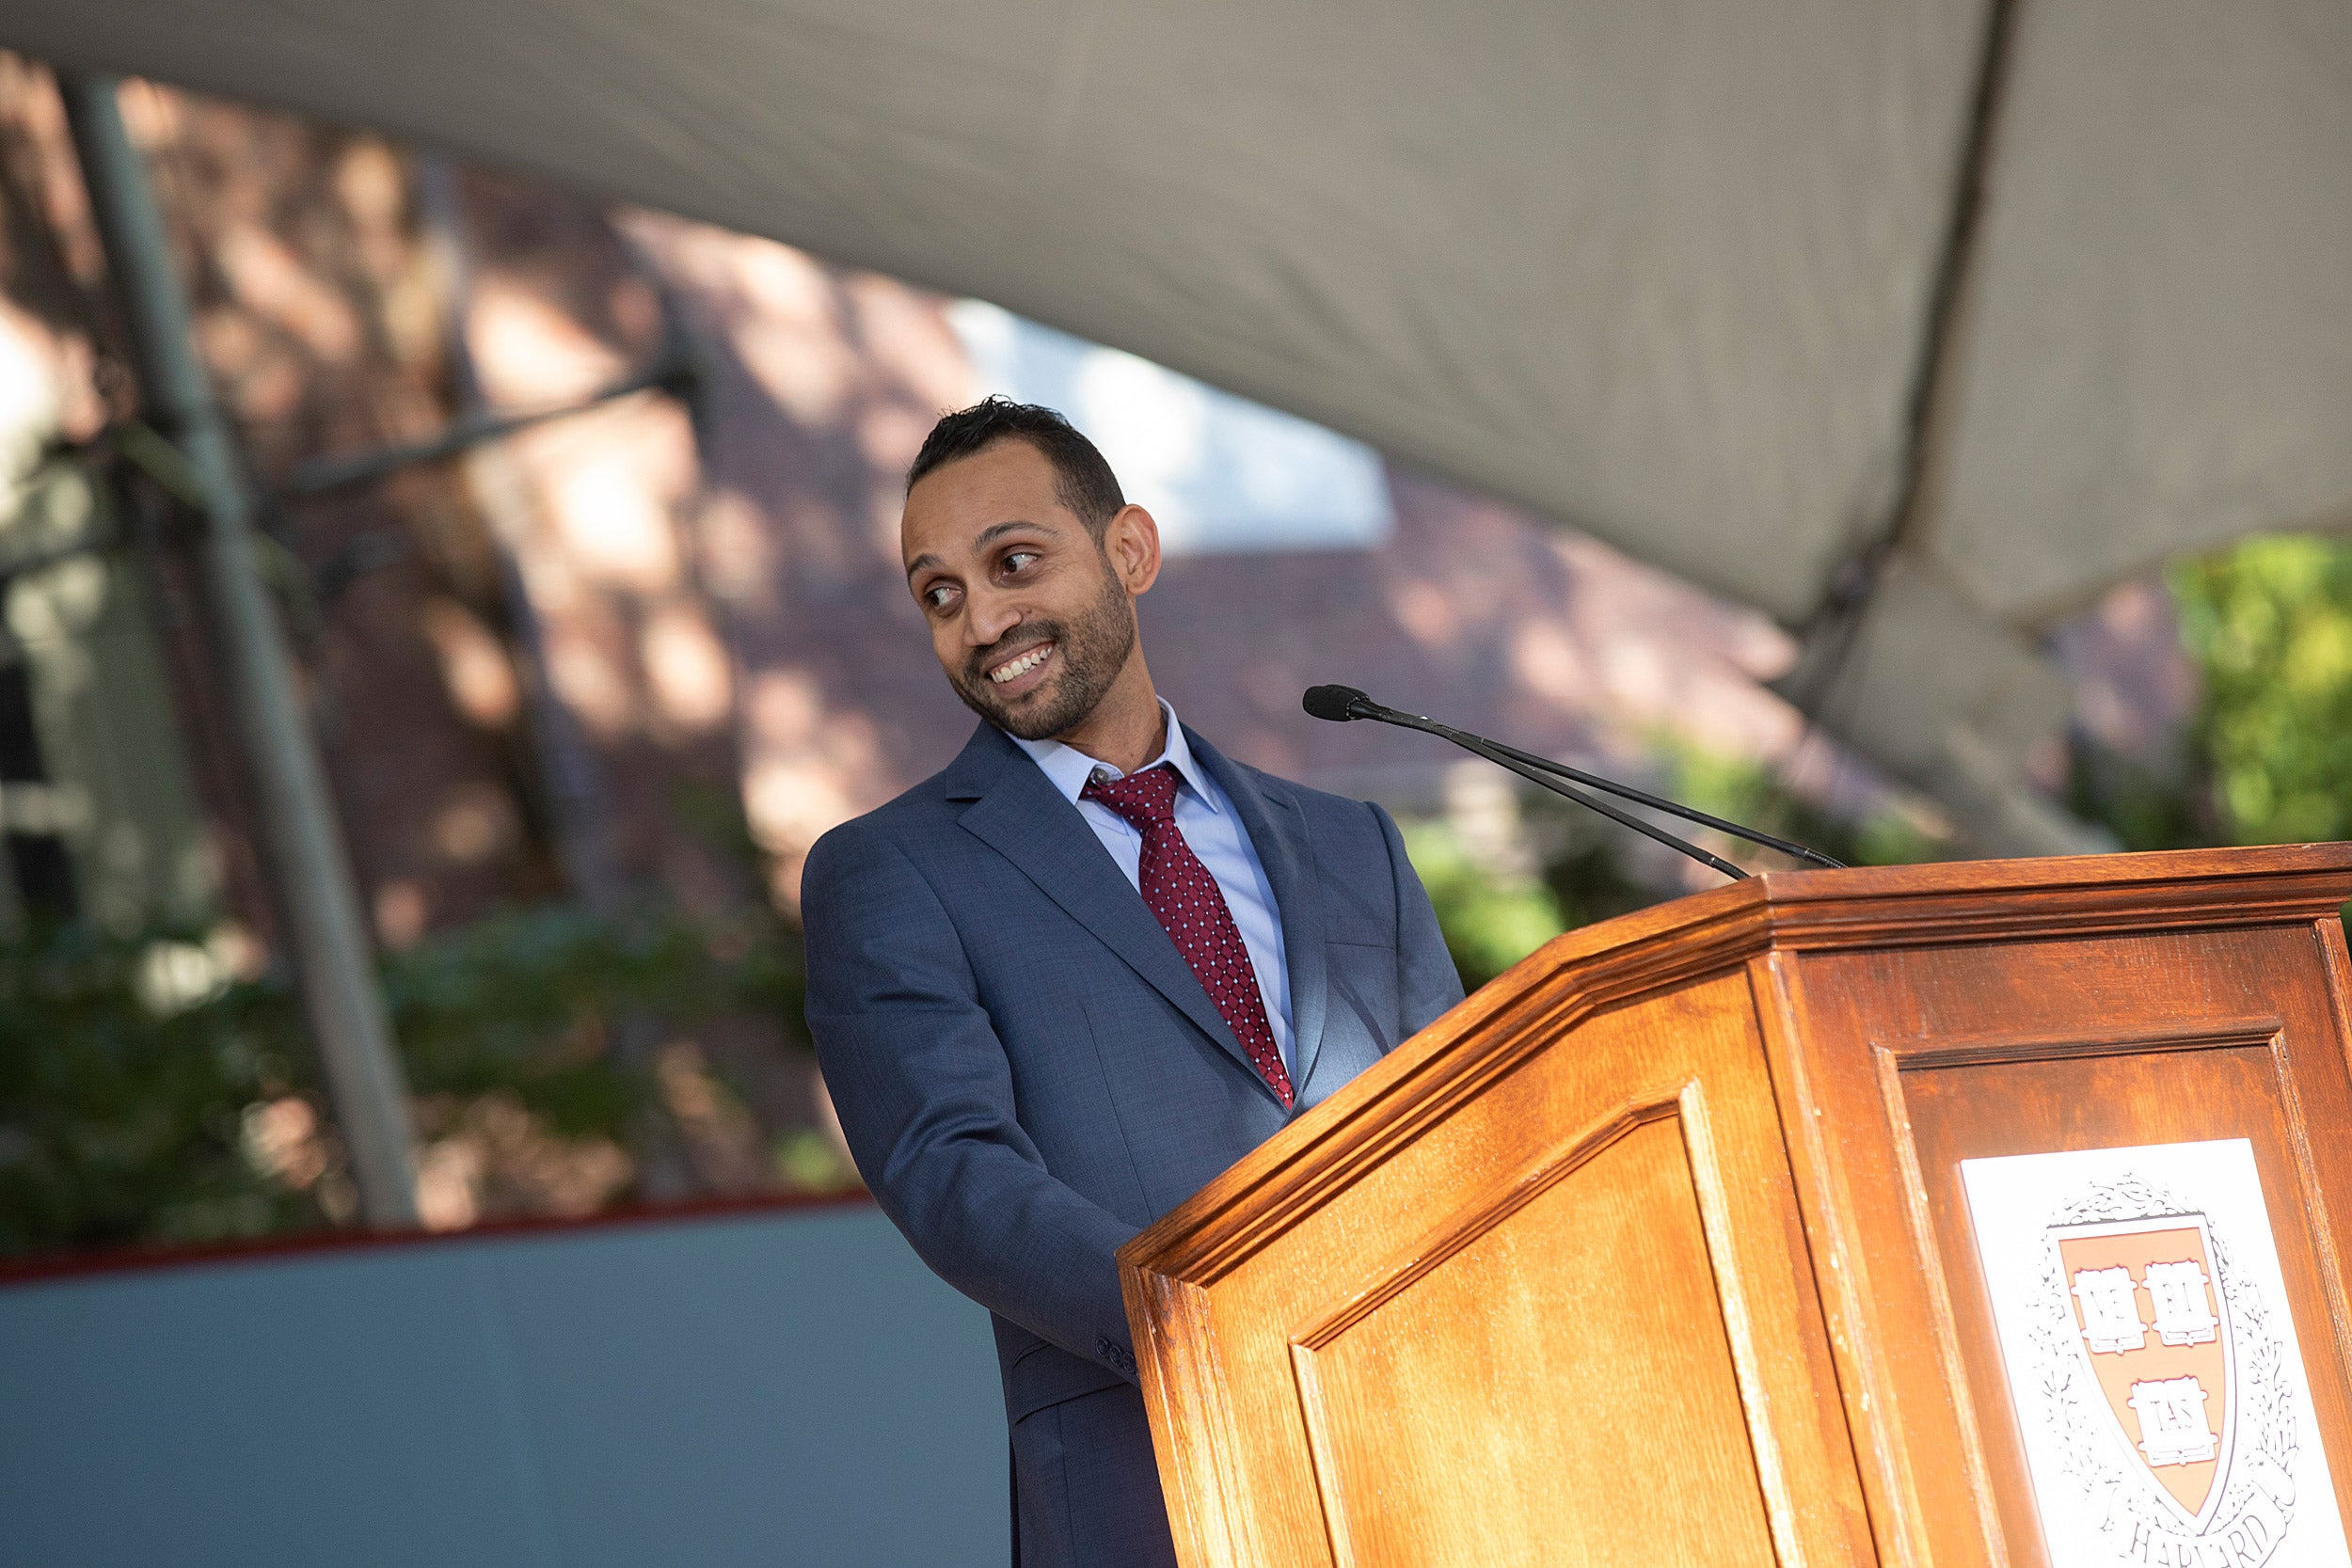 Calixto Saenz speaks at the Inauguration of Harvard President Larry Bacow.